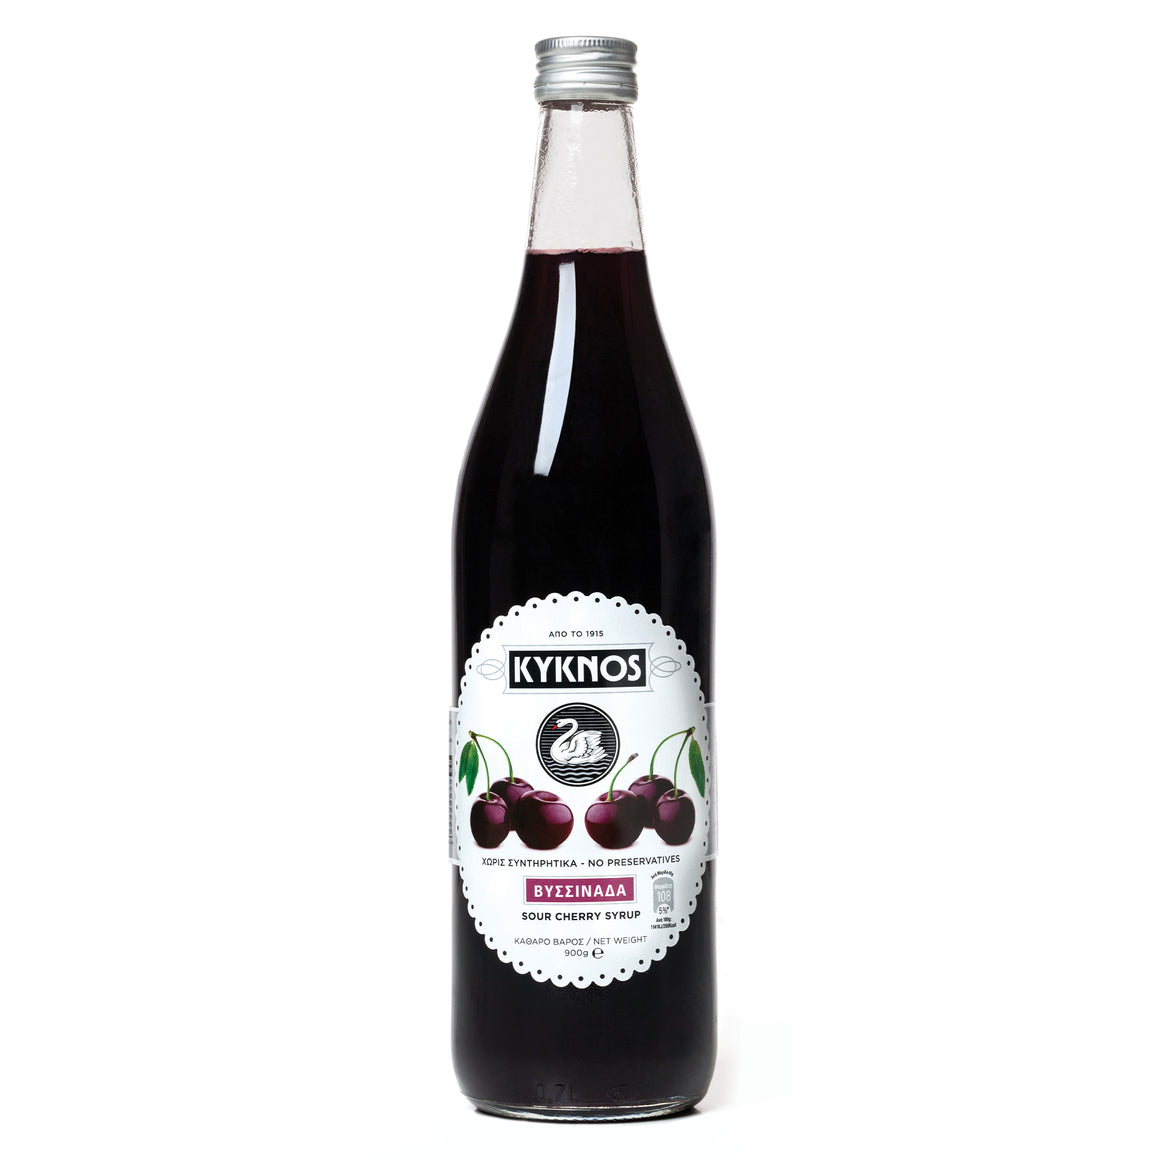 Kyknos Sour Cherry Syrup 900ml